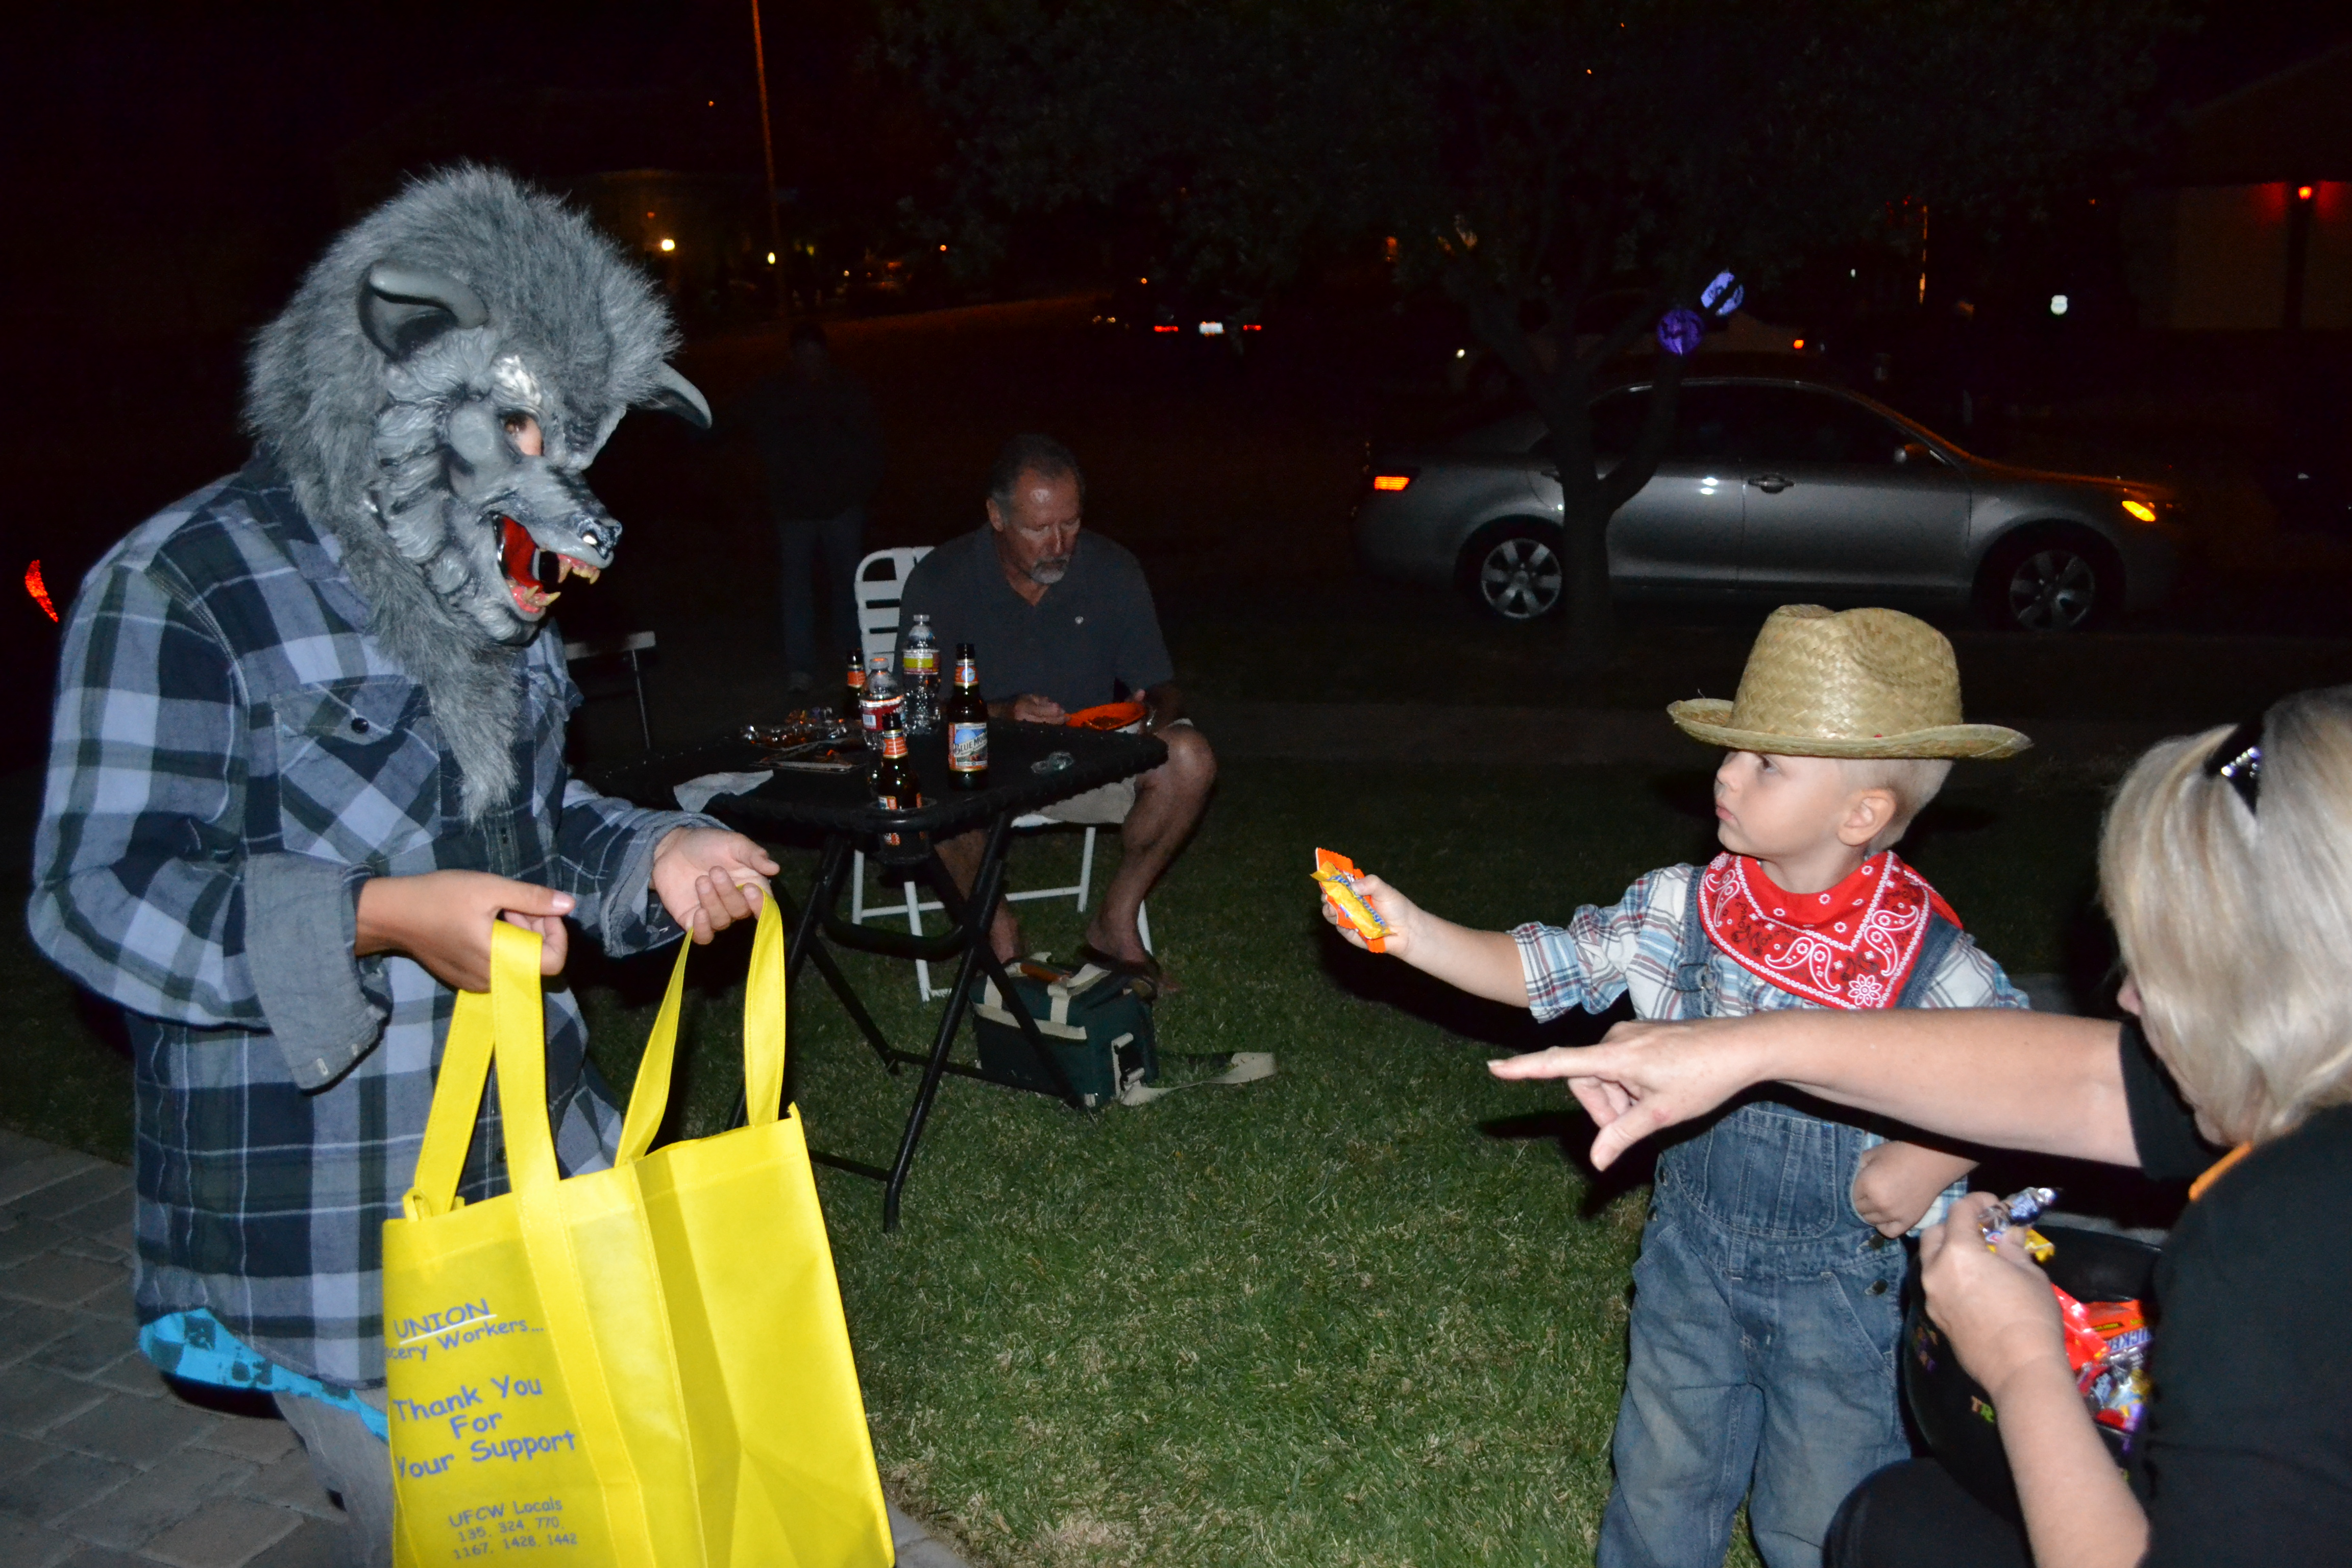 He loved handing out candy, but was wisely cautious.